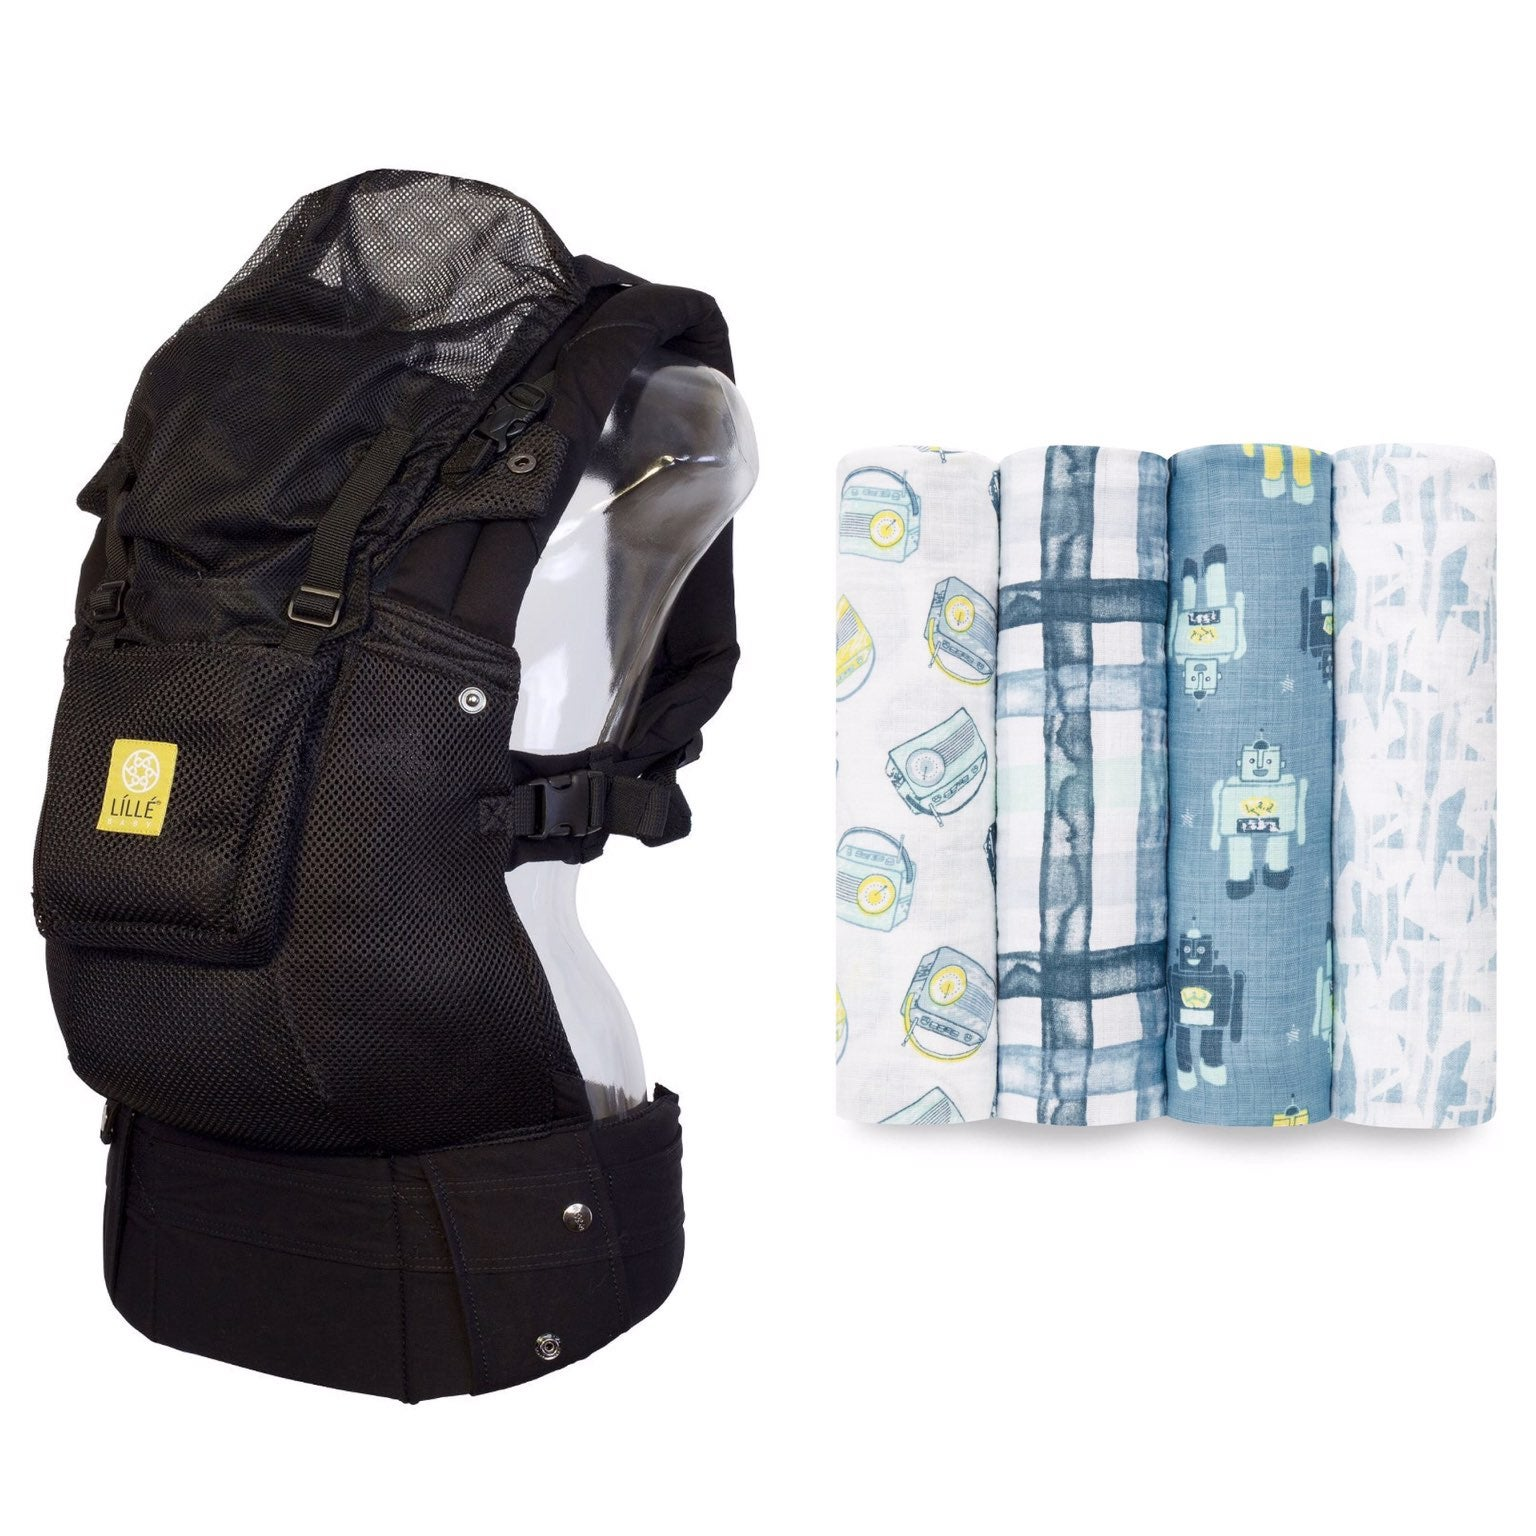 Lillebaby Carrier and Aden + Anais Set